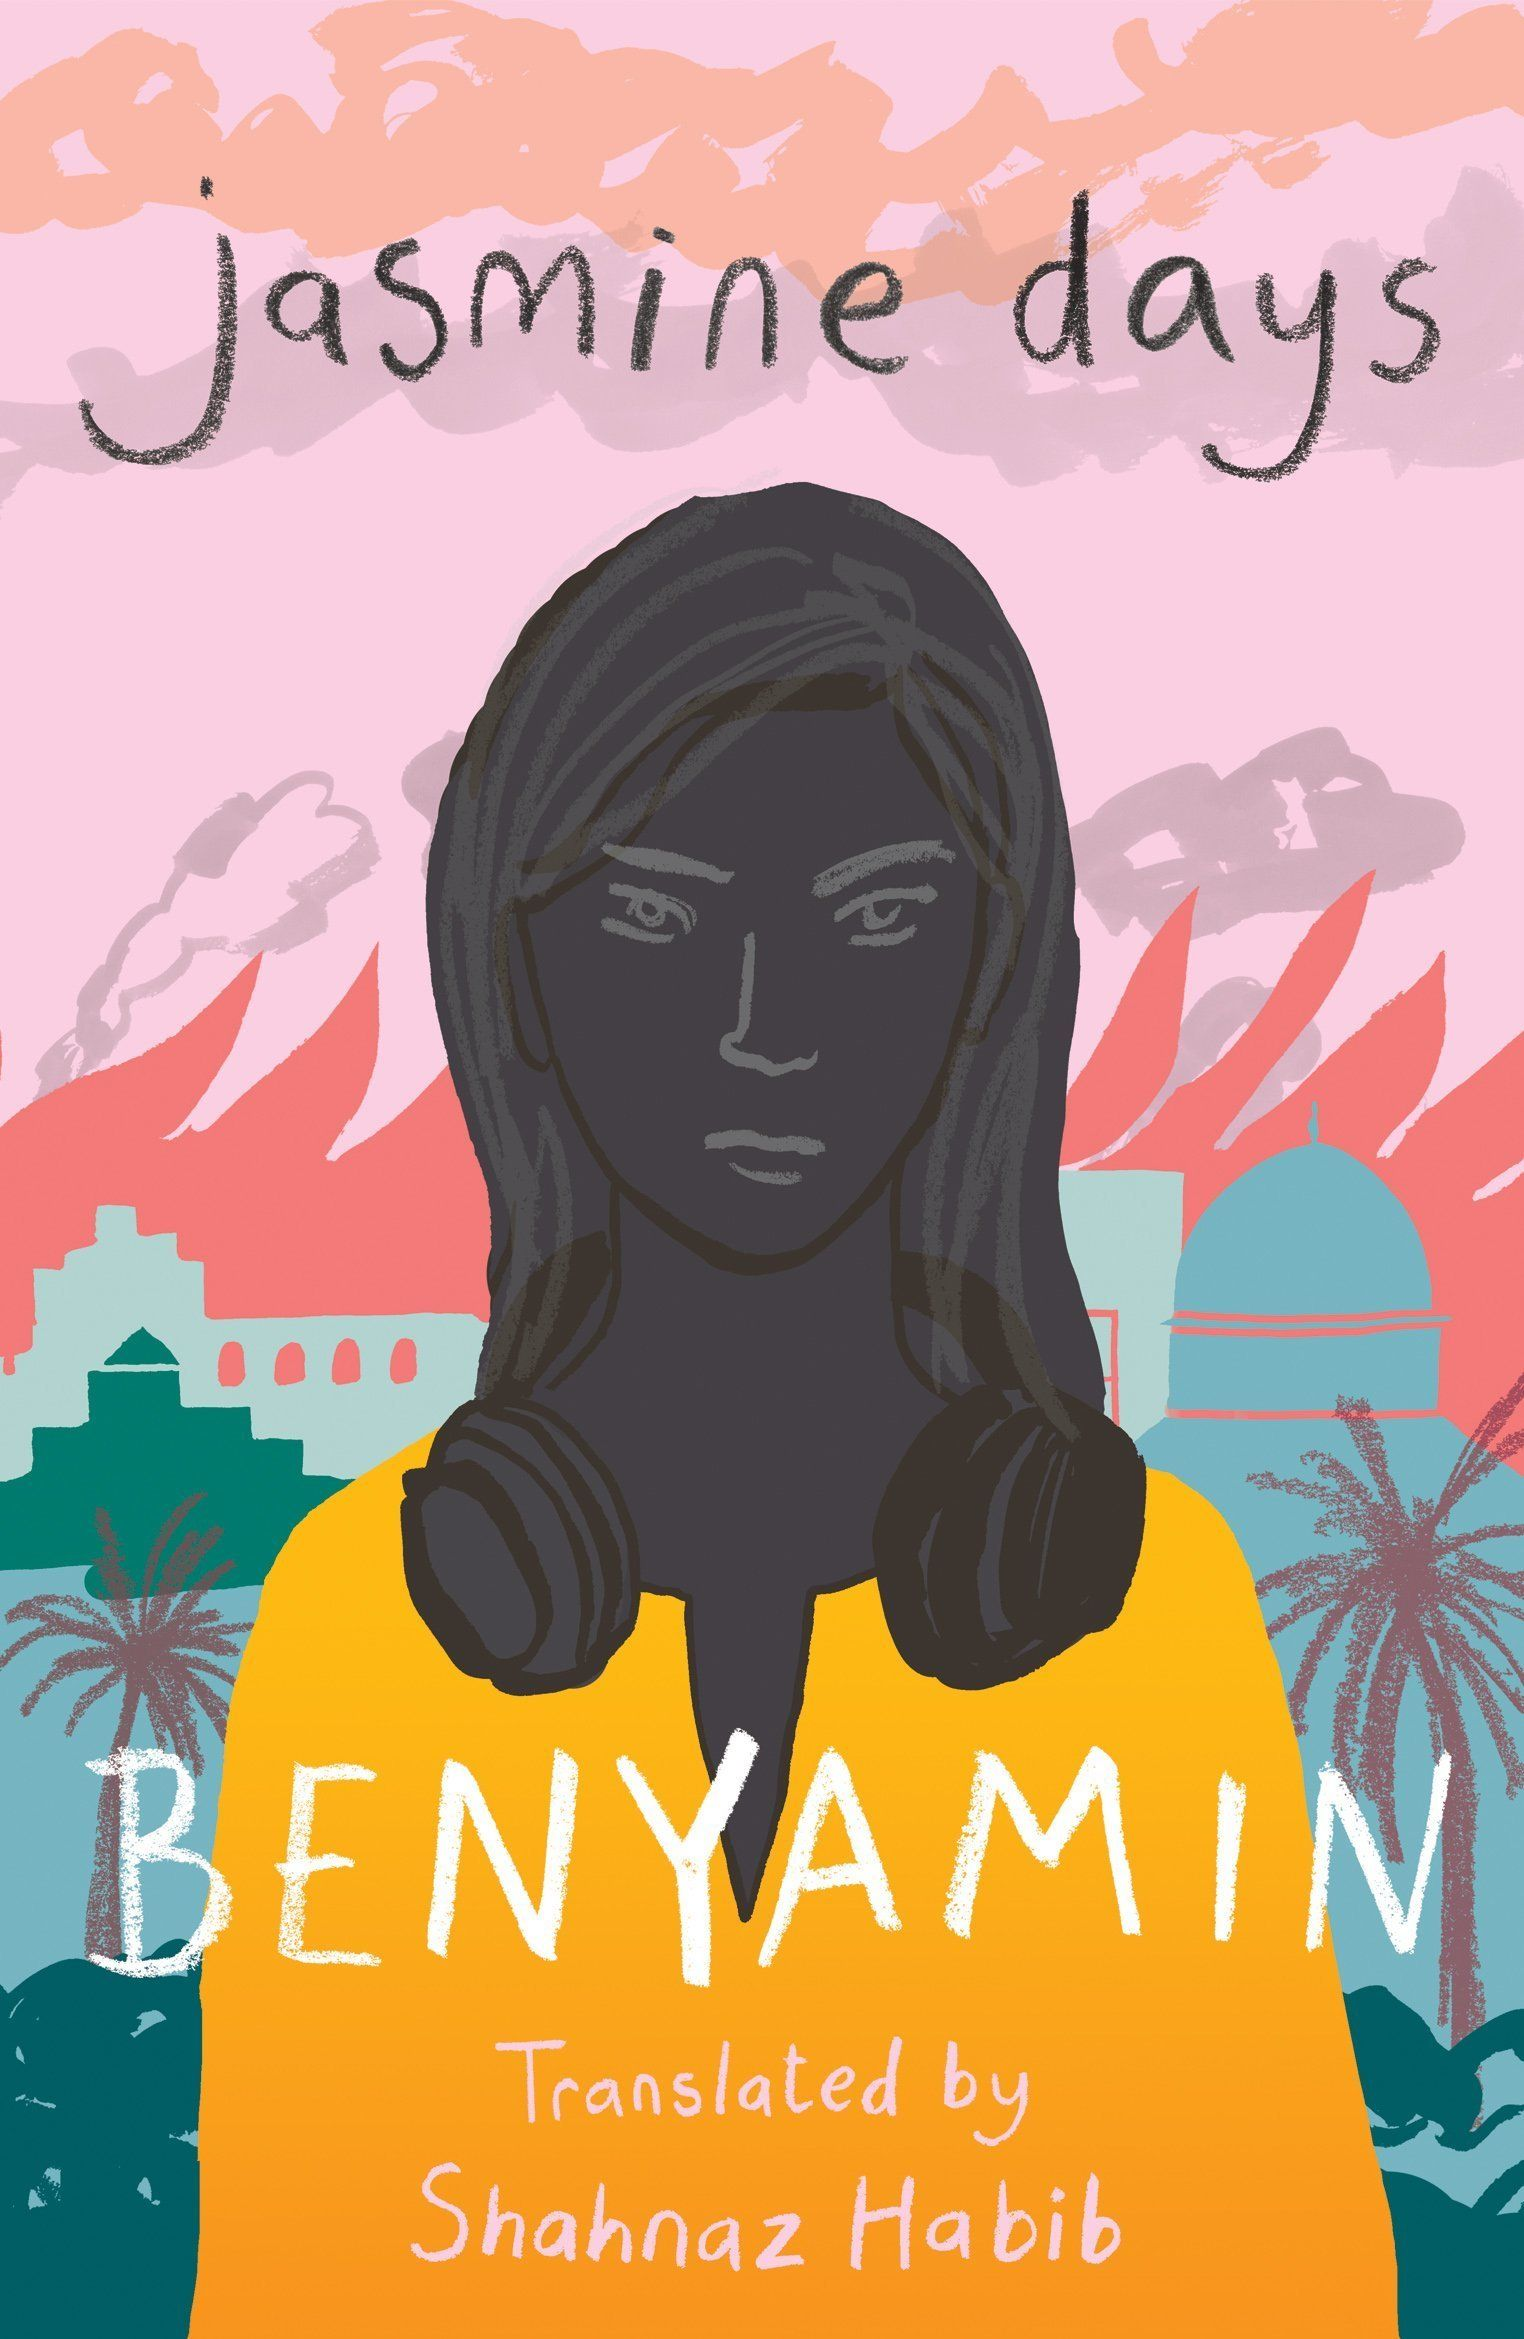 Benyamin's 'Jasmine Days' Asks Uncomfortable Questions About South Asian Migrants In The